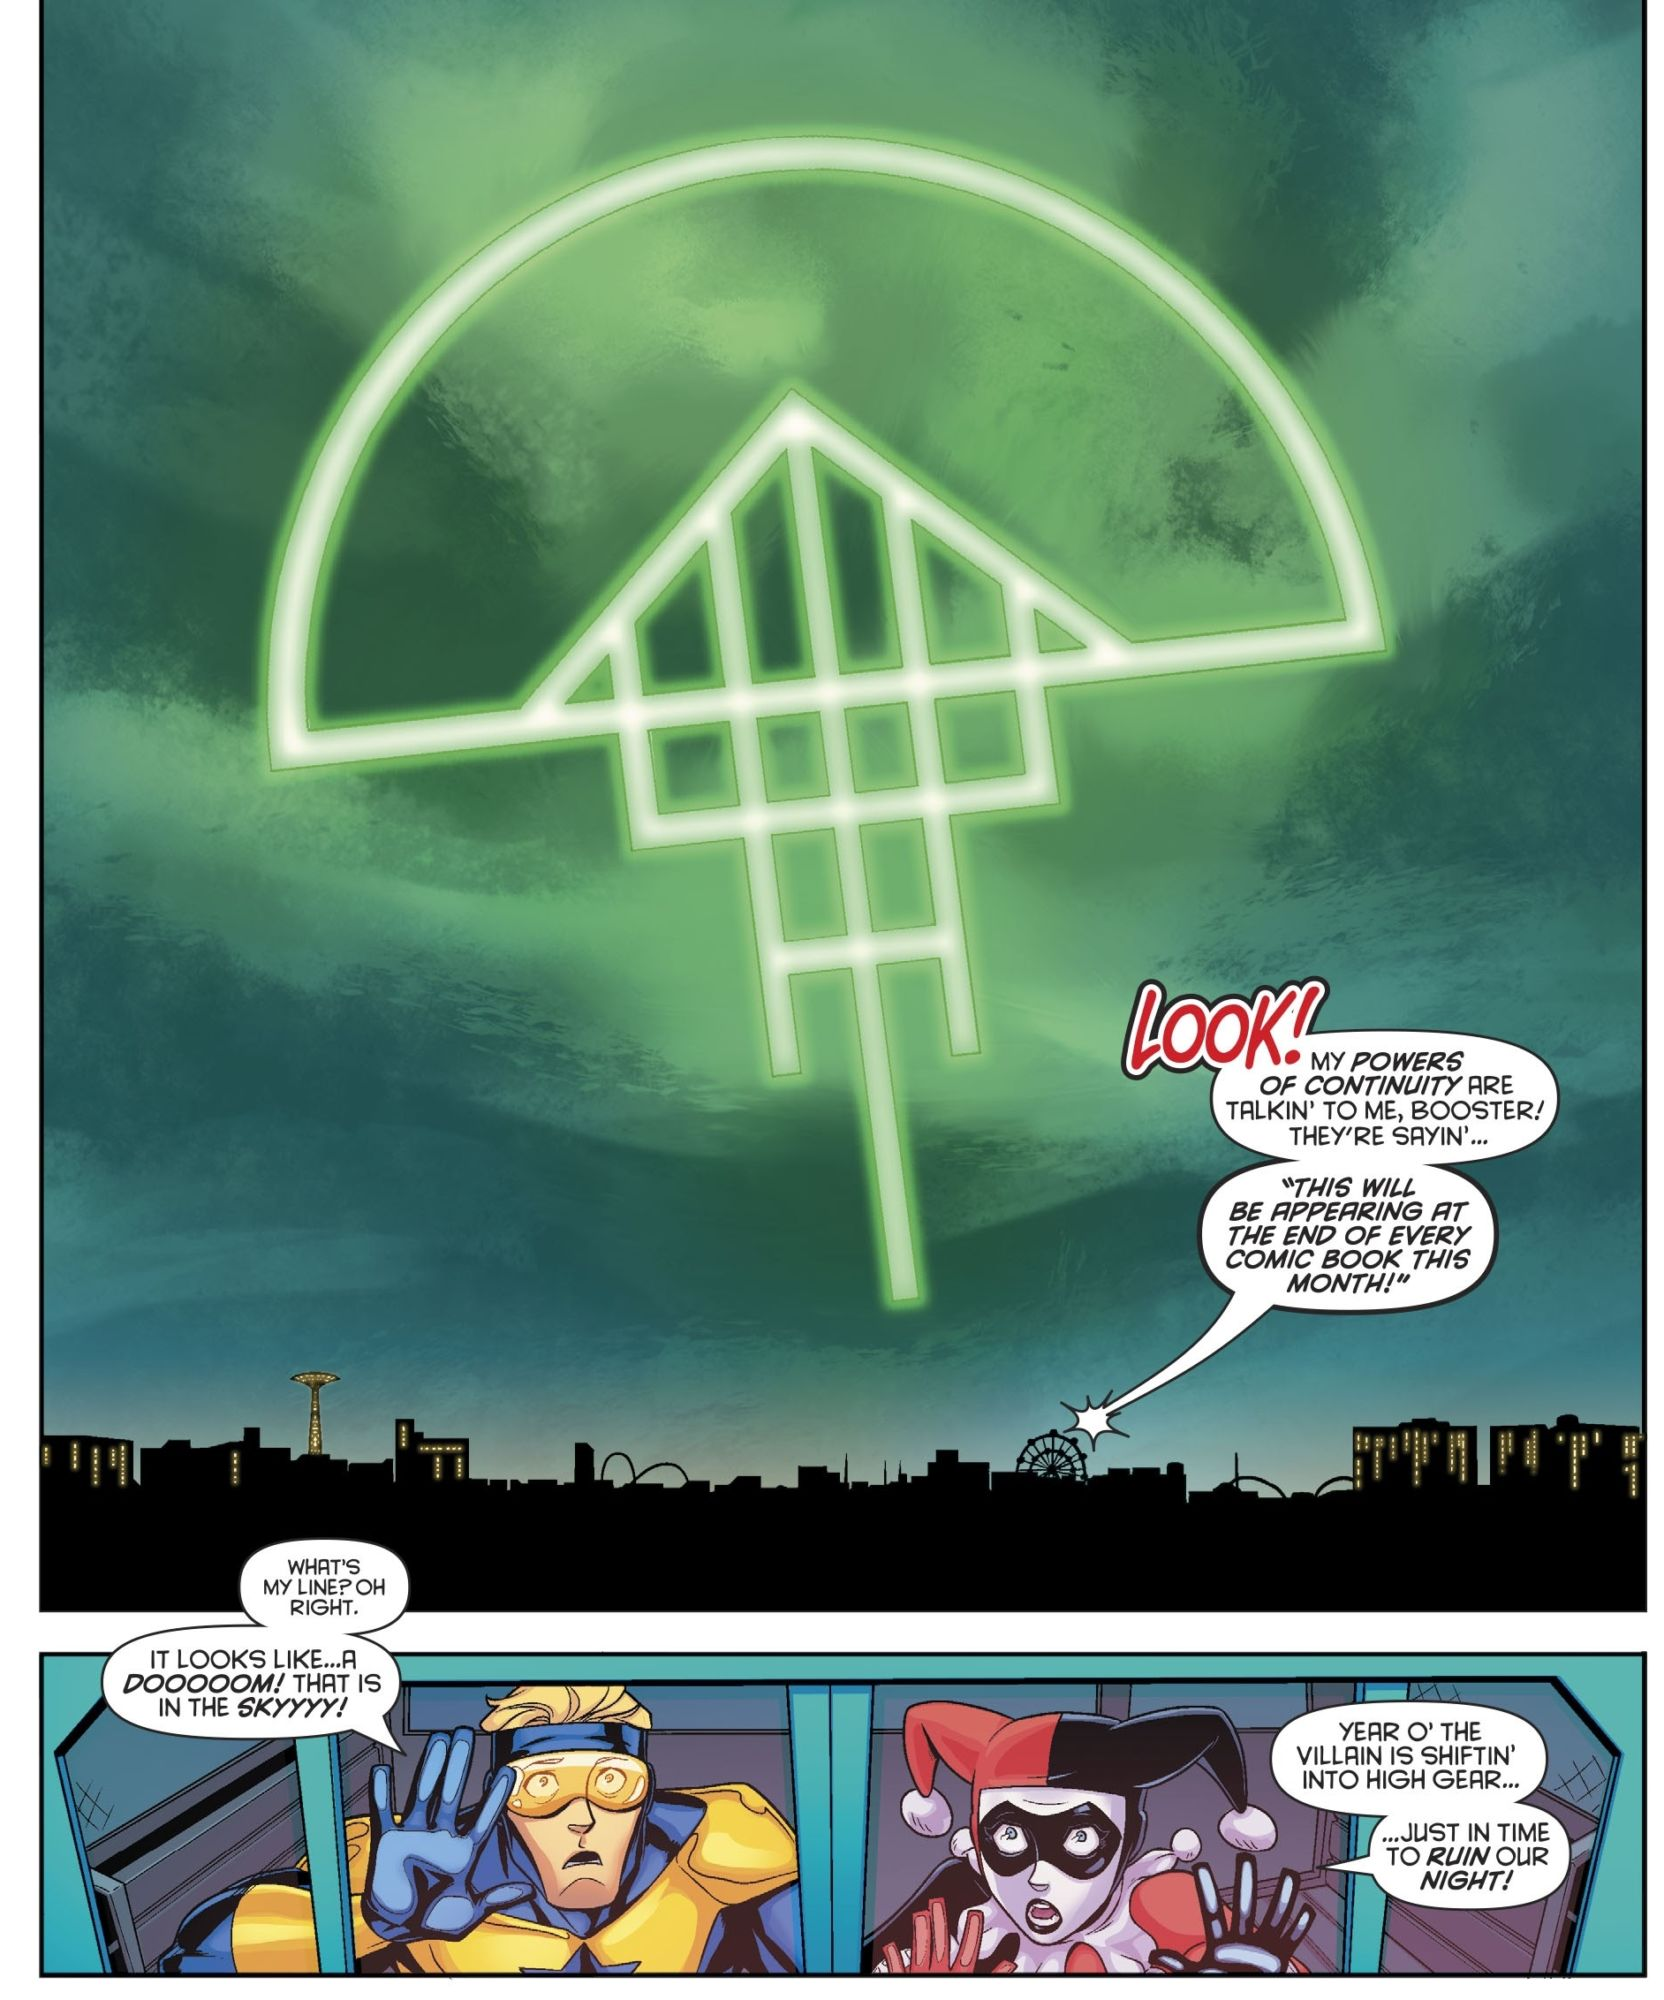 The Doom Signal Starts a Hostile Takeover in DC Comics (Hawkman, Supergirl, JLO, Harley Quinn, Deathstroke and Catwoman Spoilers)